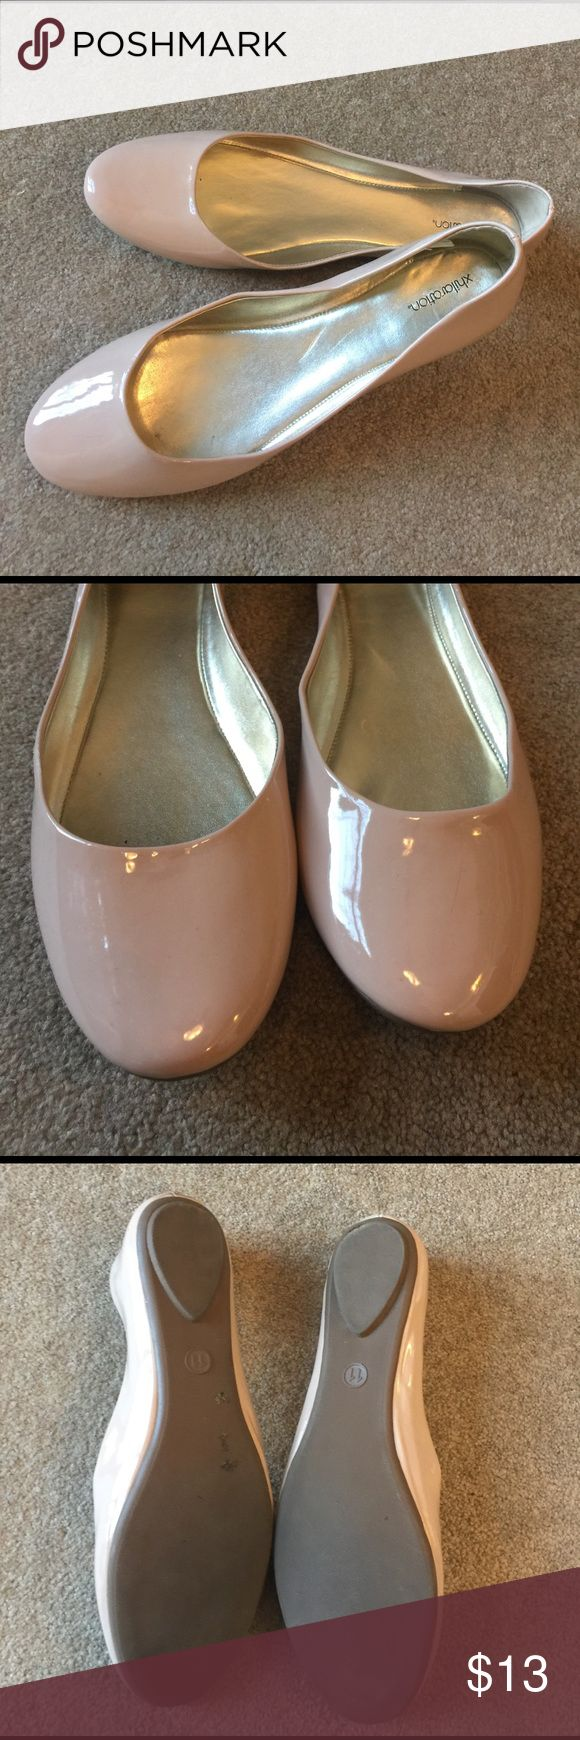 Cream ballet flats All man-made material. No scuffs or markings Xhilaration Shoes Flats & Loafers